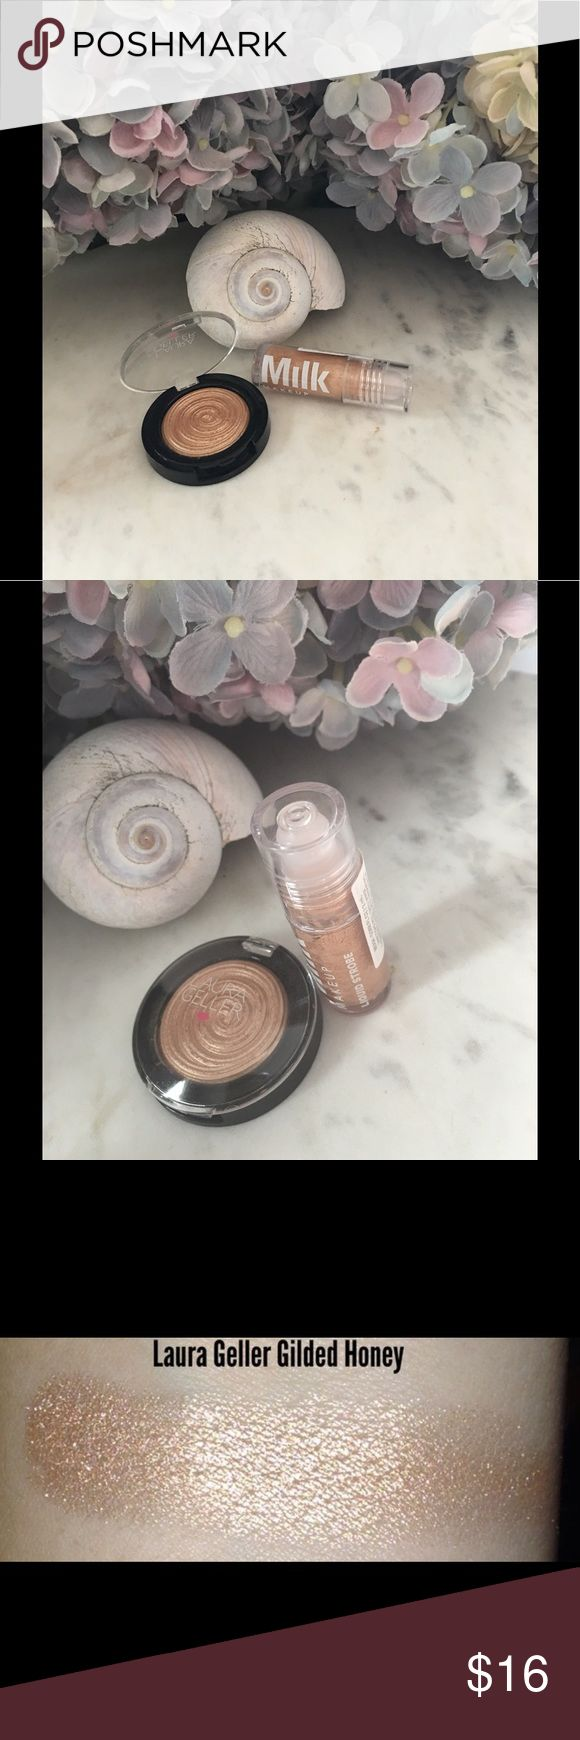 """""""Get Glowing"""" The Laura Gellar gilded honey is a must have for all of you champagne/gold lovers. This is a generous travel size. Gorgeous color and formula. No trades. Bundle up and Enjoy 😊 Sephora Makeup Luminizer"""